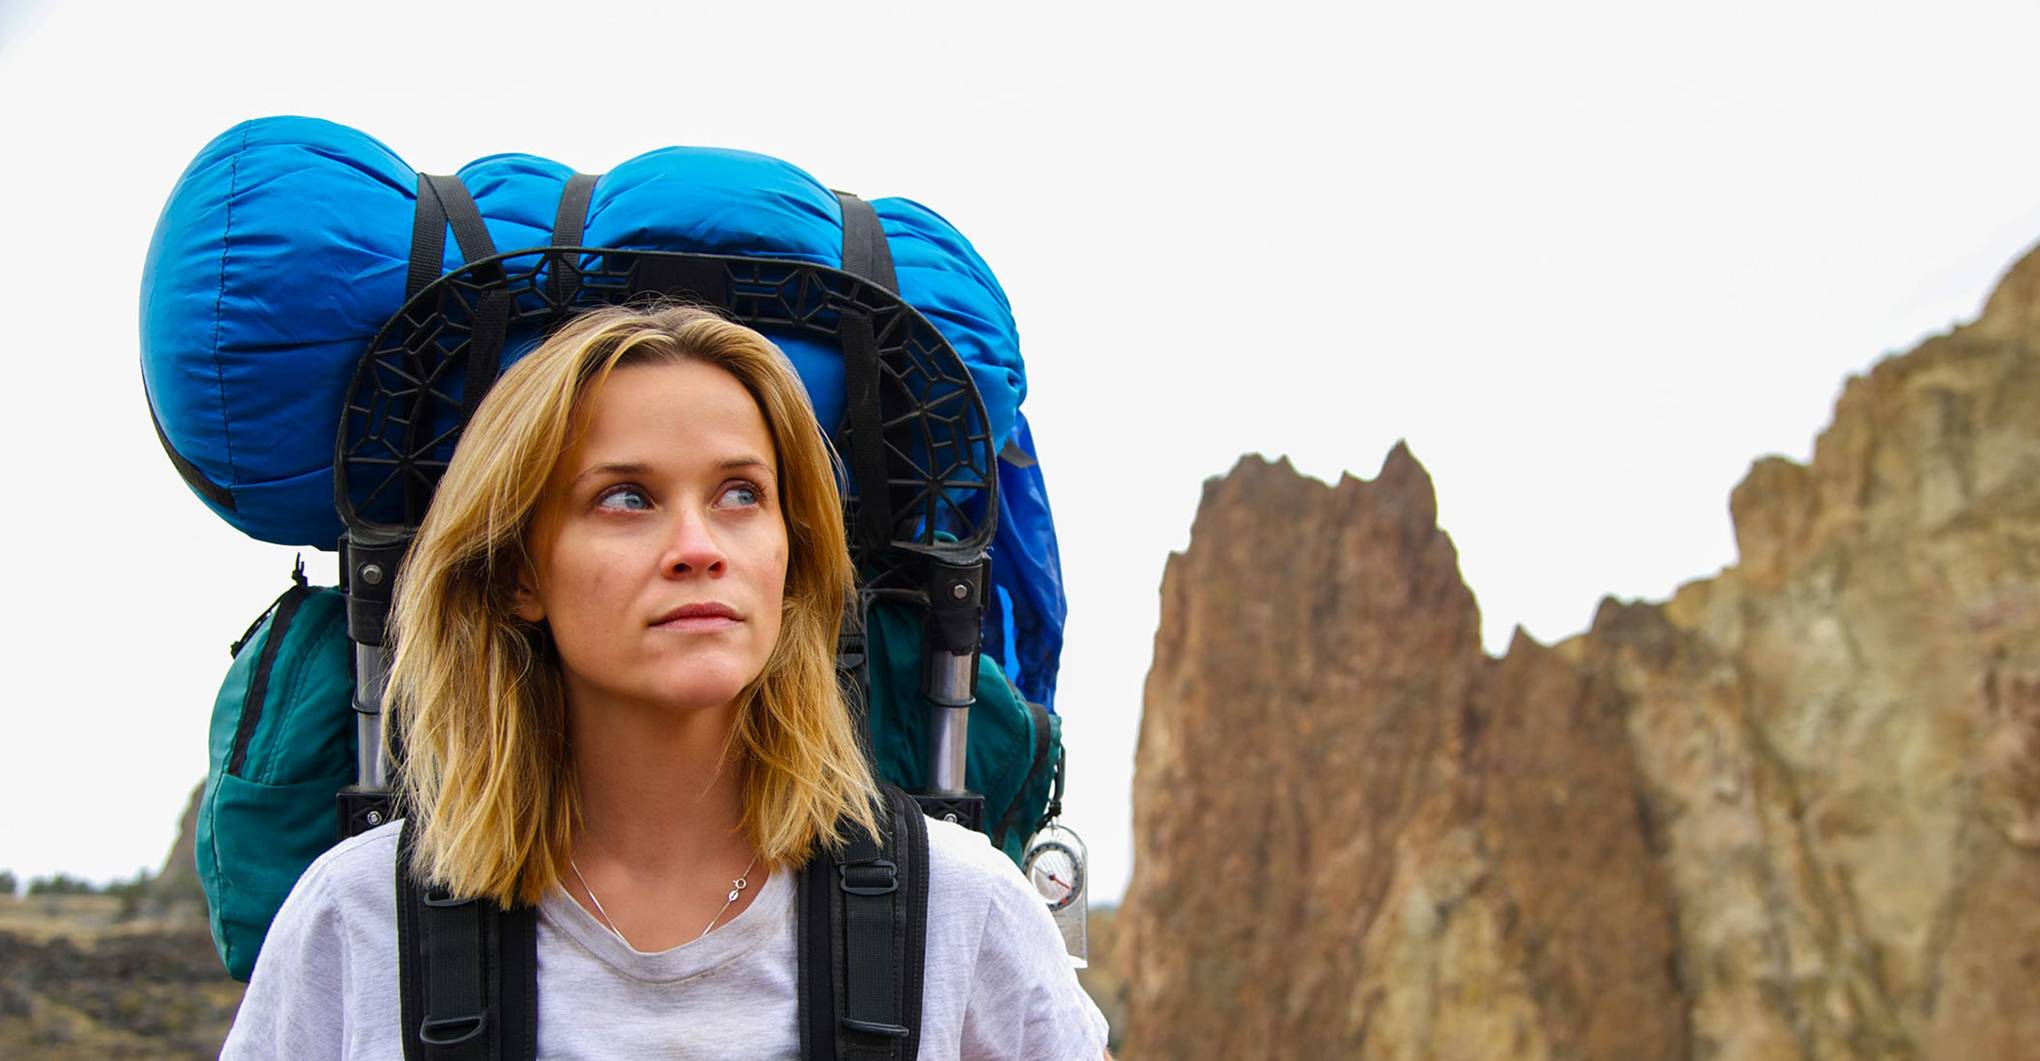 Women Are Becoming More Adventurous Travellers – and Doing It Alone